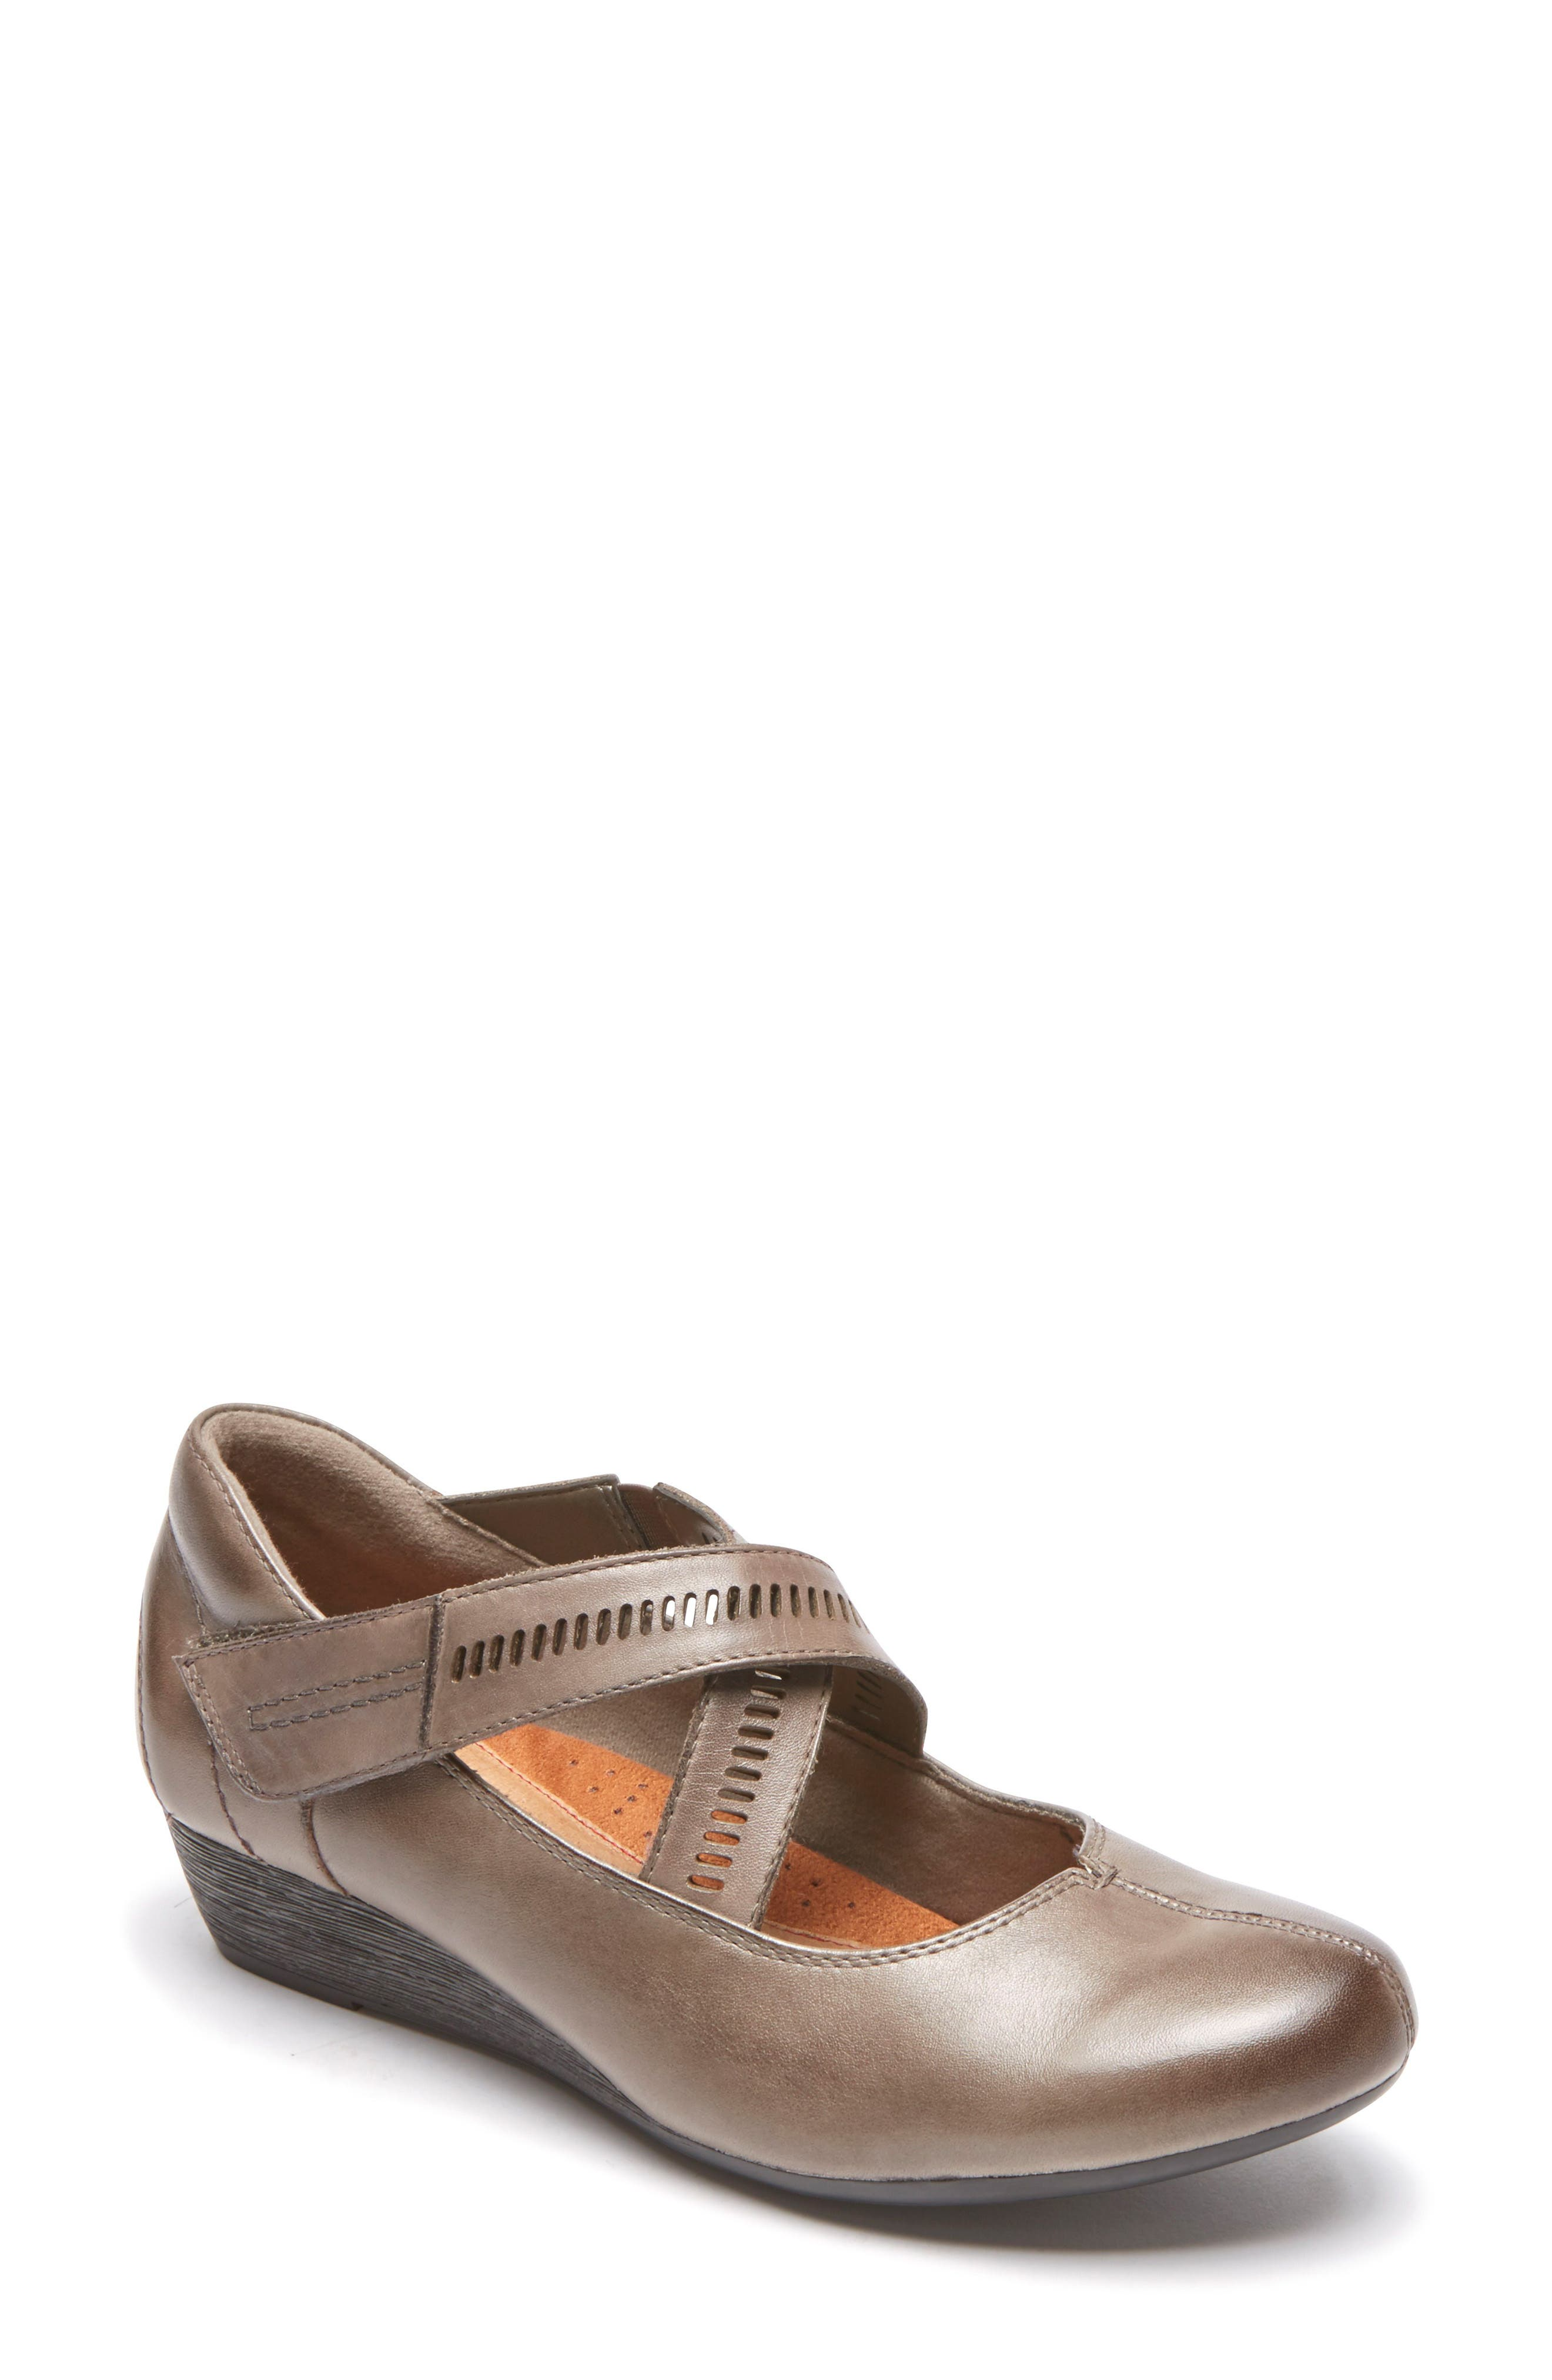 Rockport Cobb Hill 'Janet' Mary Jane Wedge (Women)